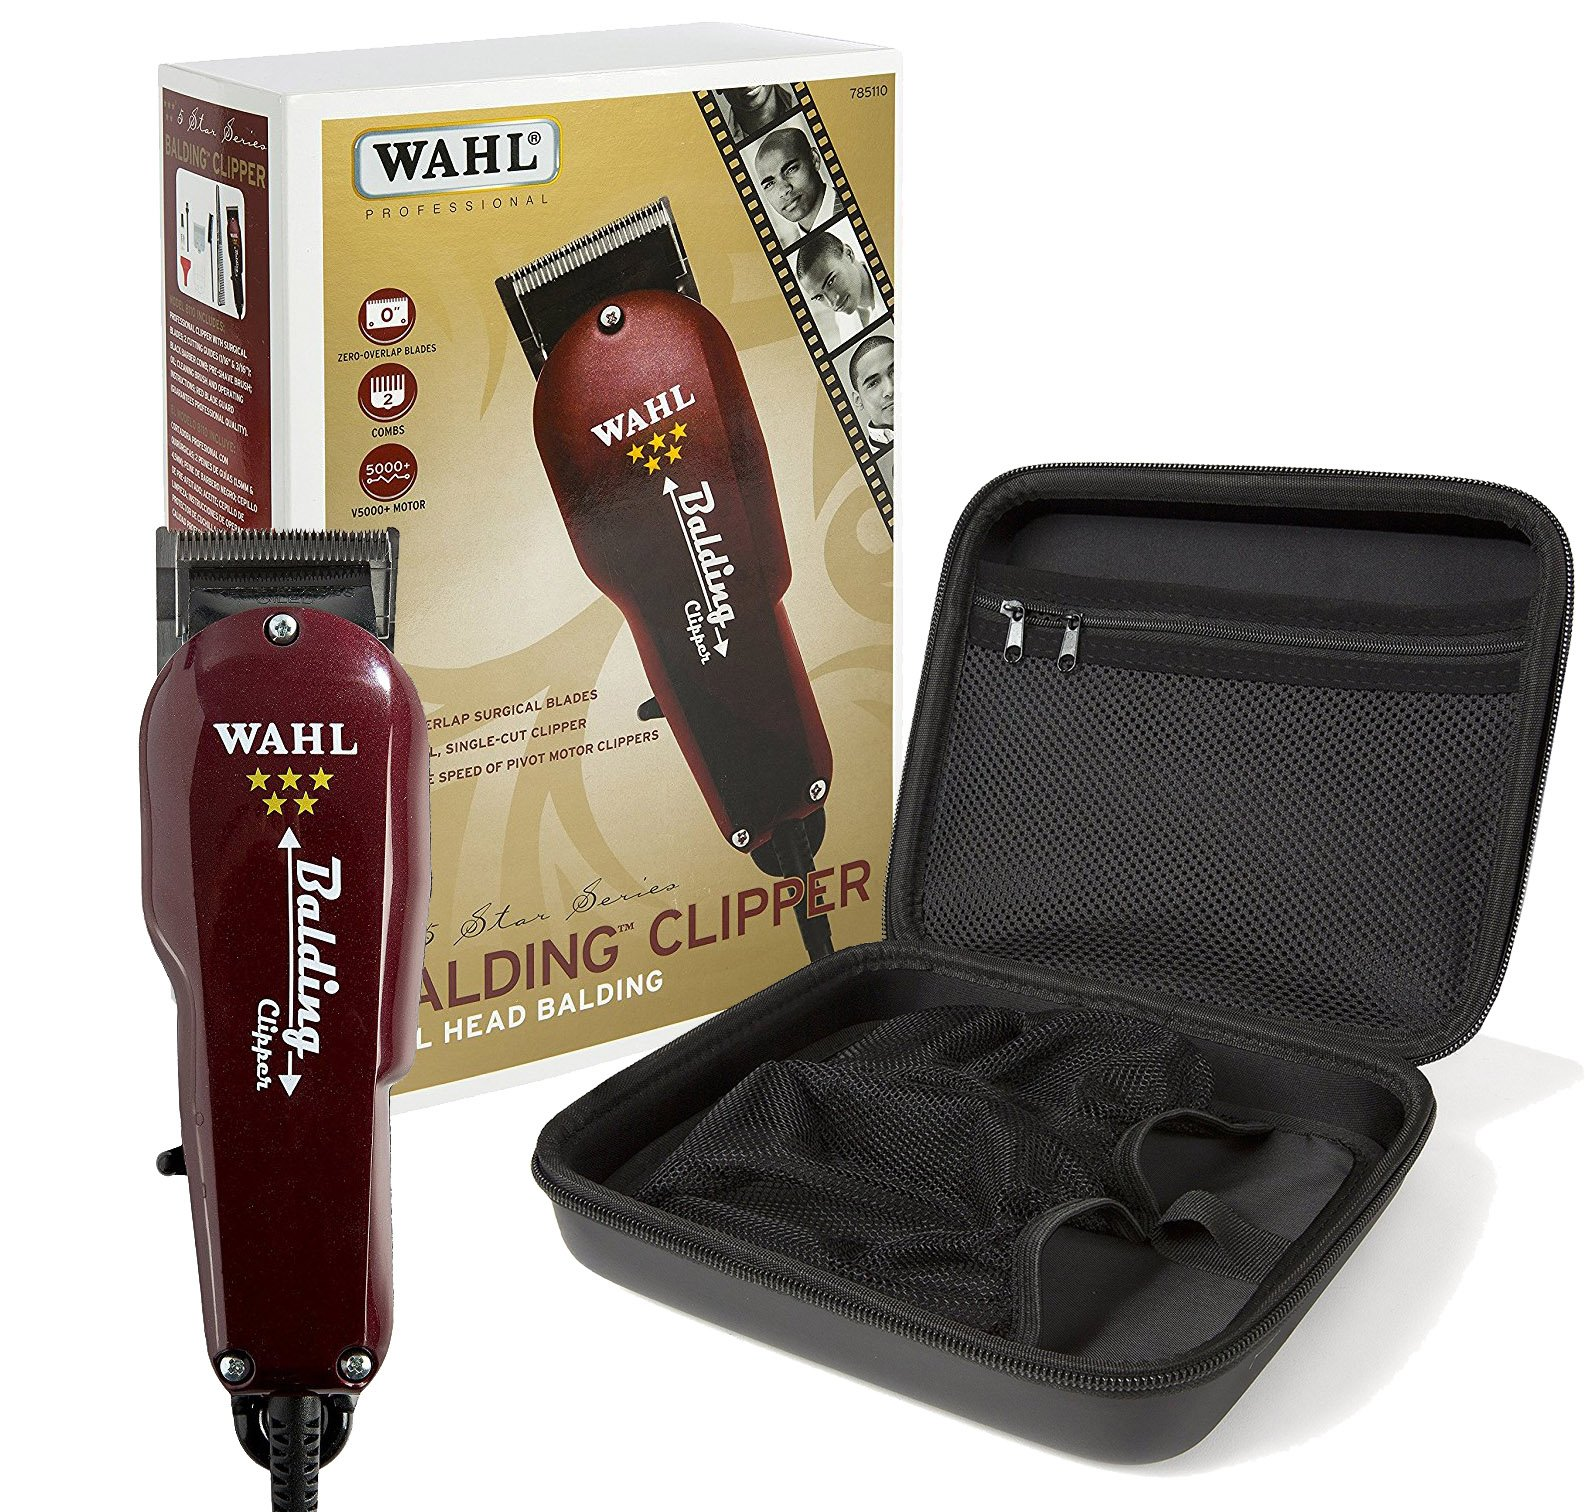 Wahl Professional 5-Star Balding Clipper #8110 with Travel Storage Case #90732 Great for Barbers and Stylists